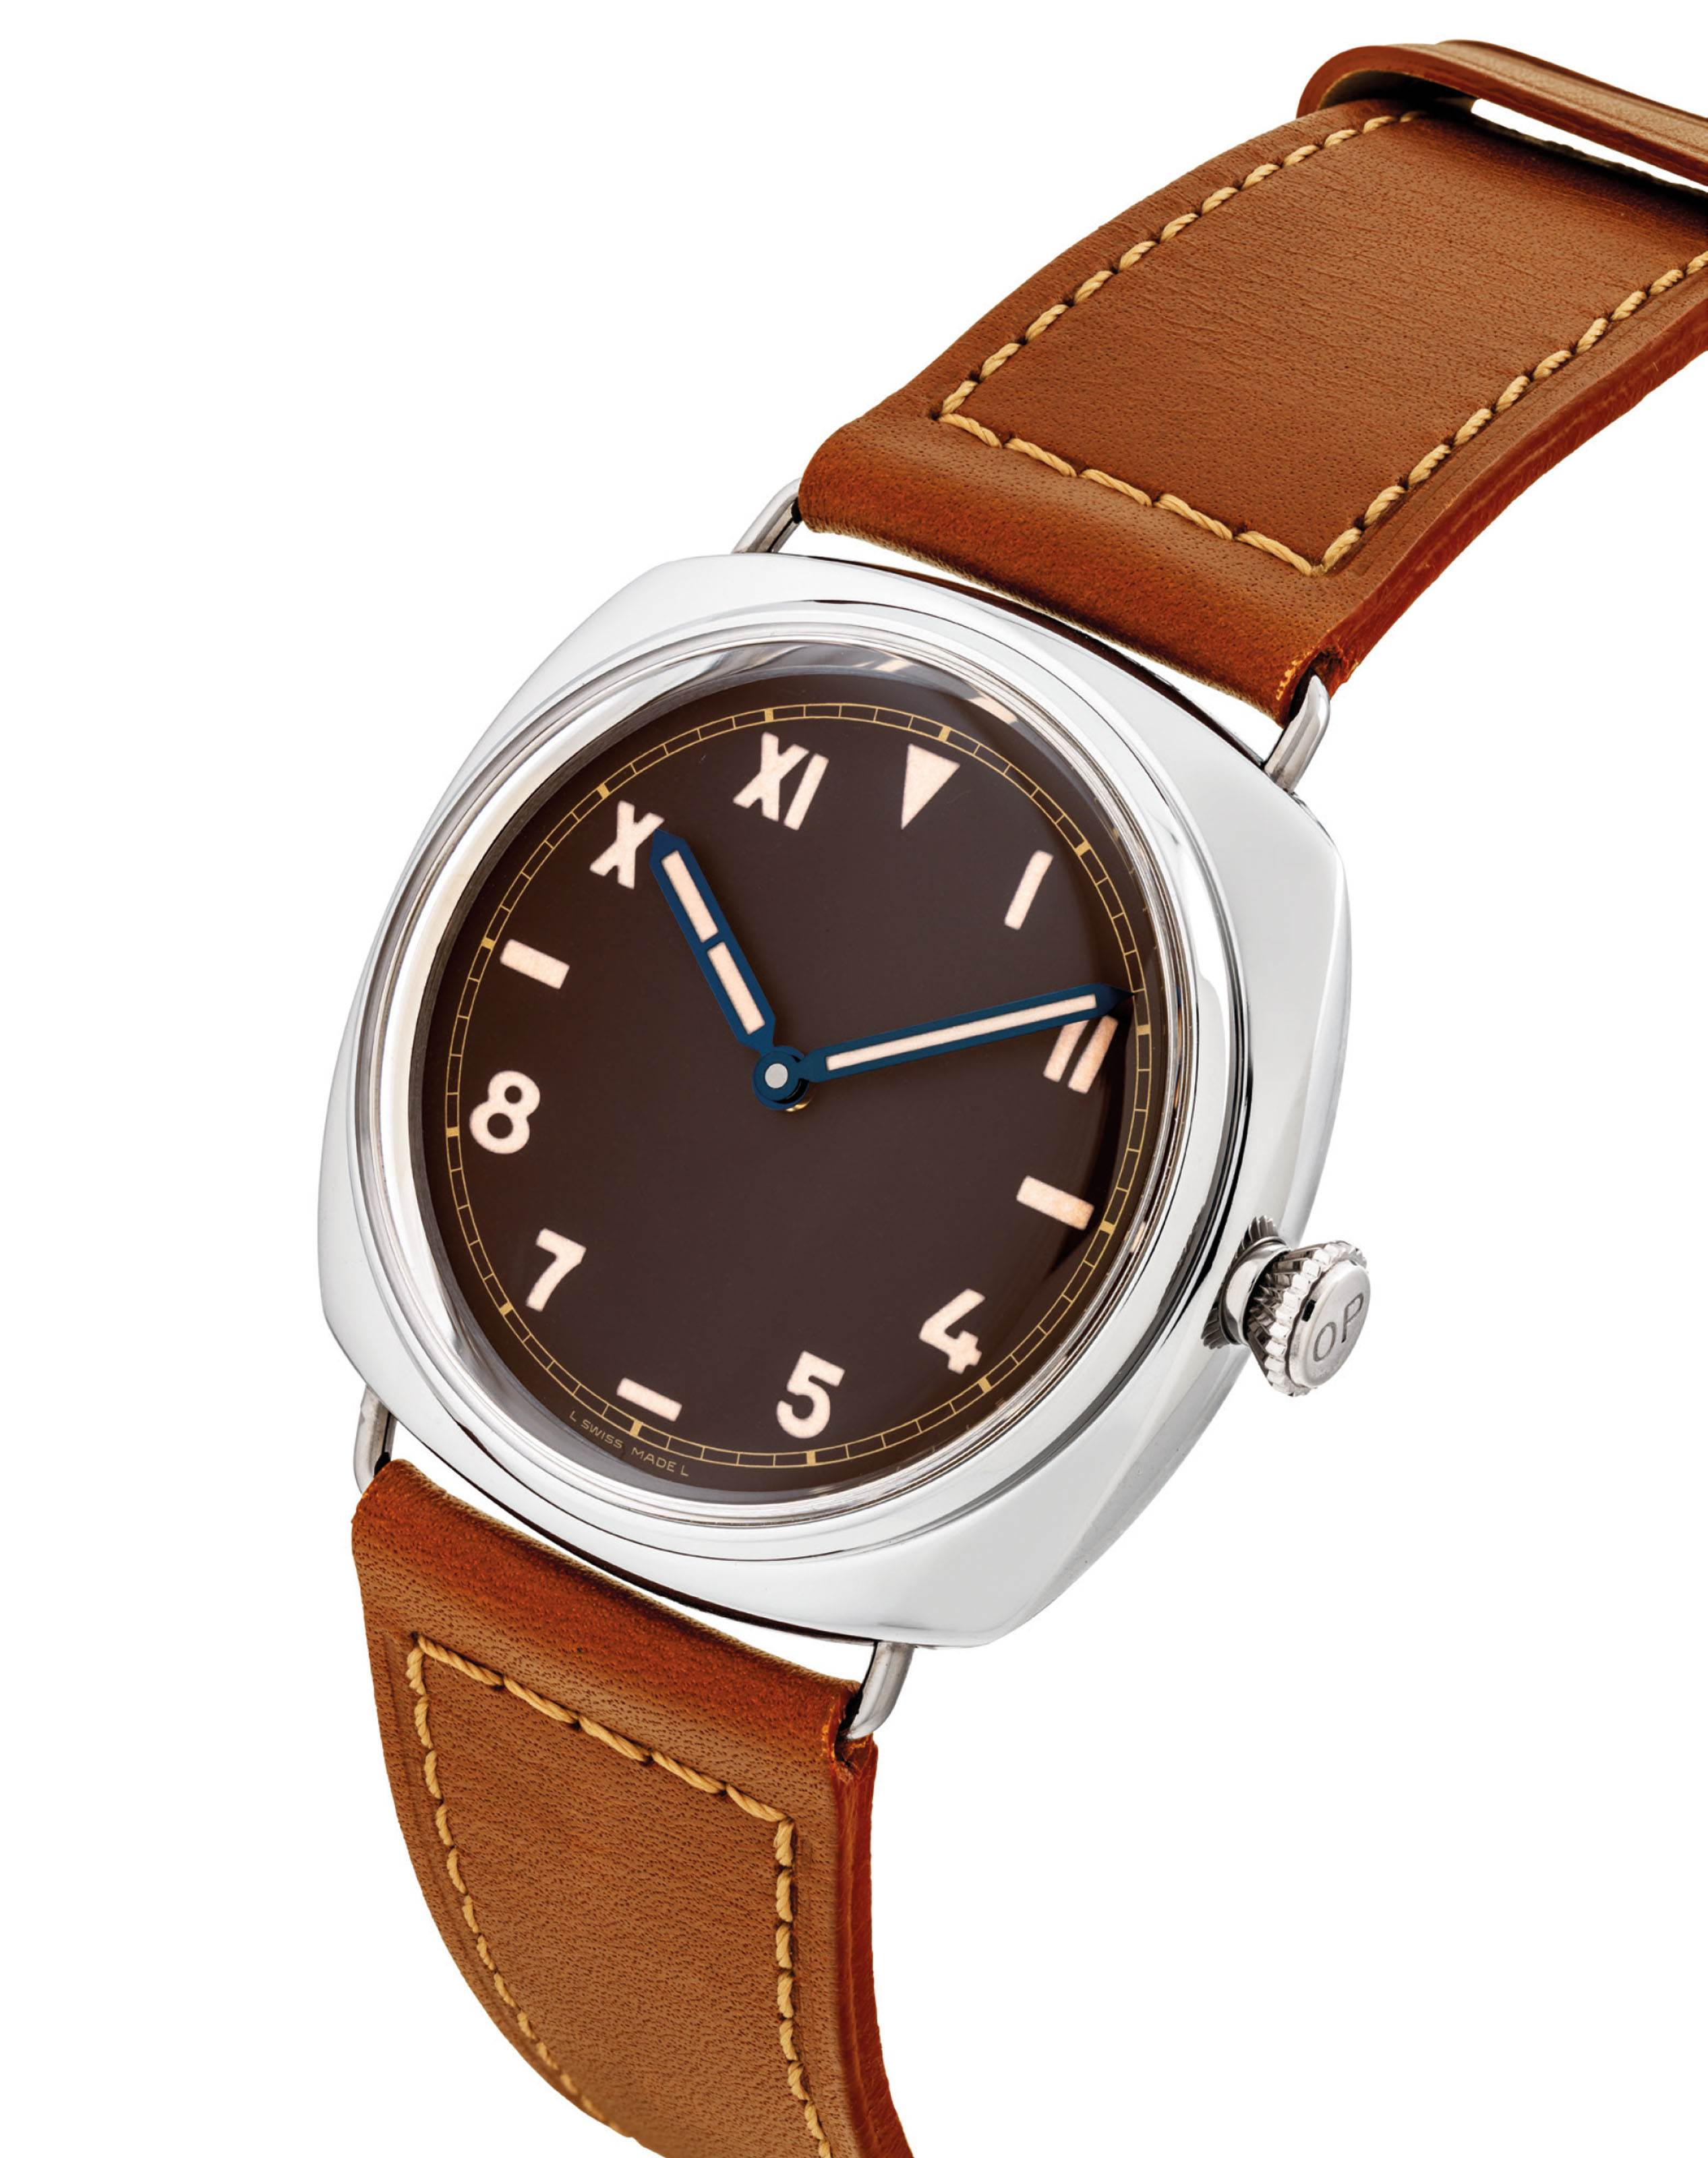 PANERAI. A FINE AND VERY RARE PLATINUM LIMITED EDITION CUSHION-SHAPED...